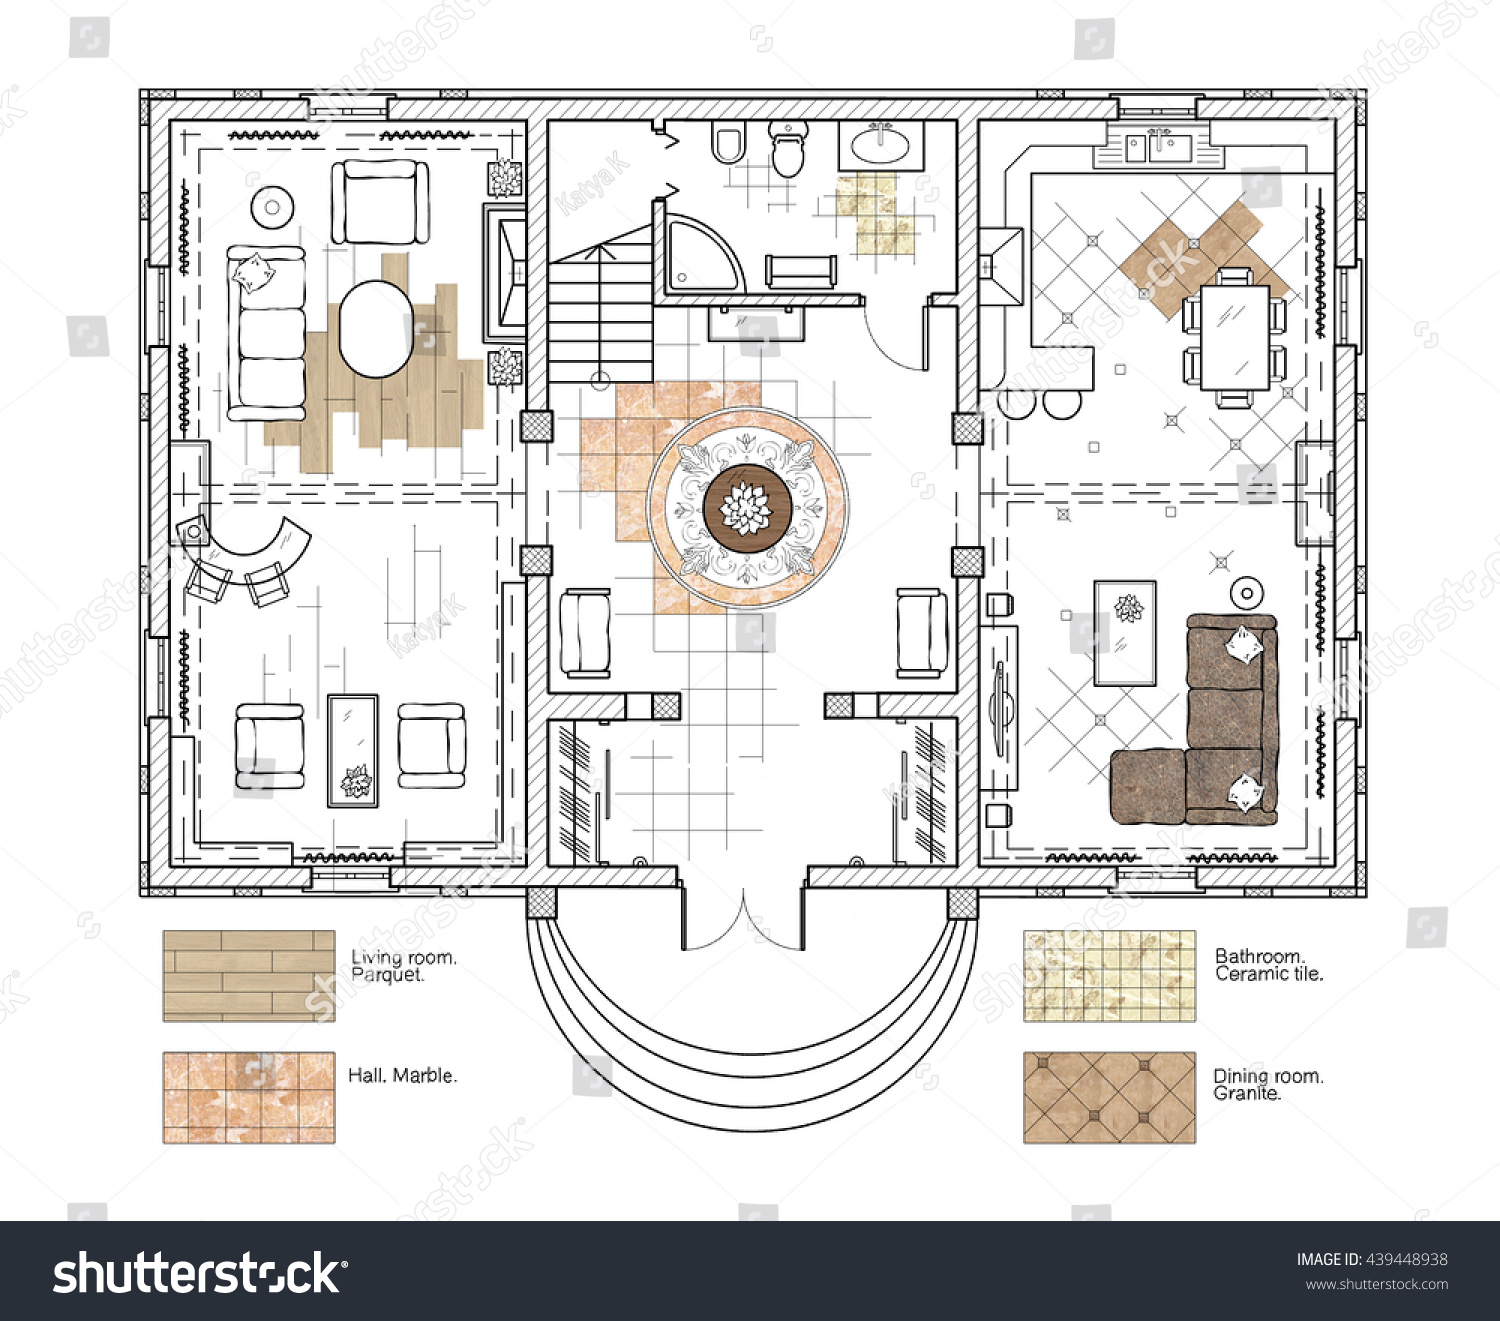 architecture design house drawing. Architectural Drawing. The Design Of House. A Floor Plan With Furniture And Finishing Architecture House Drawing